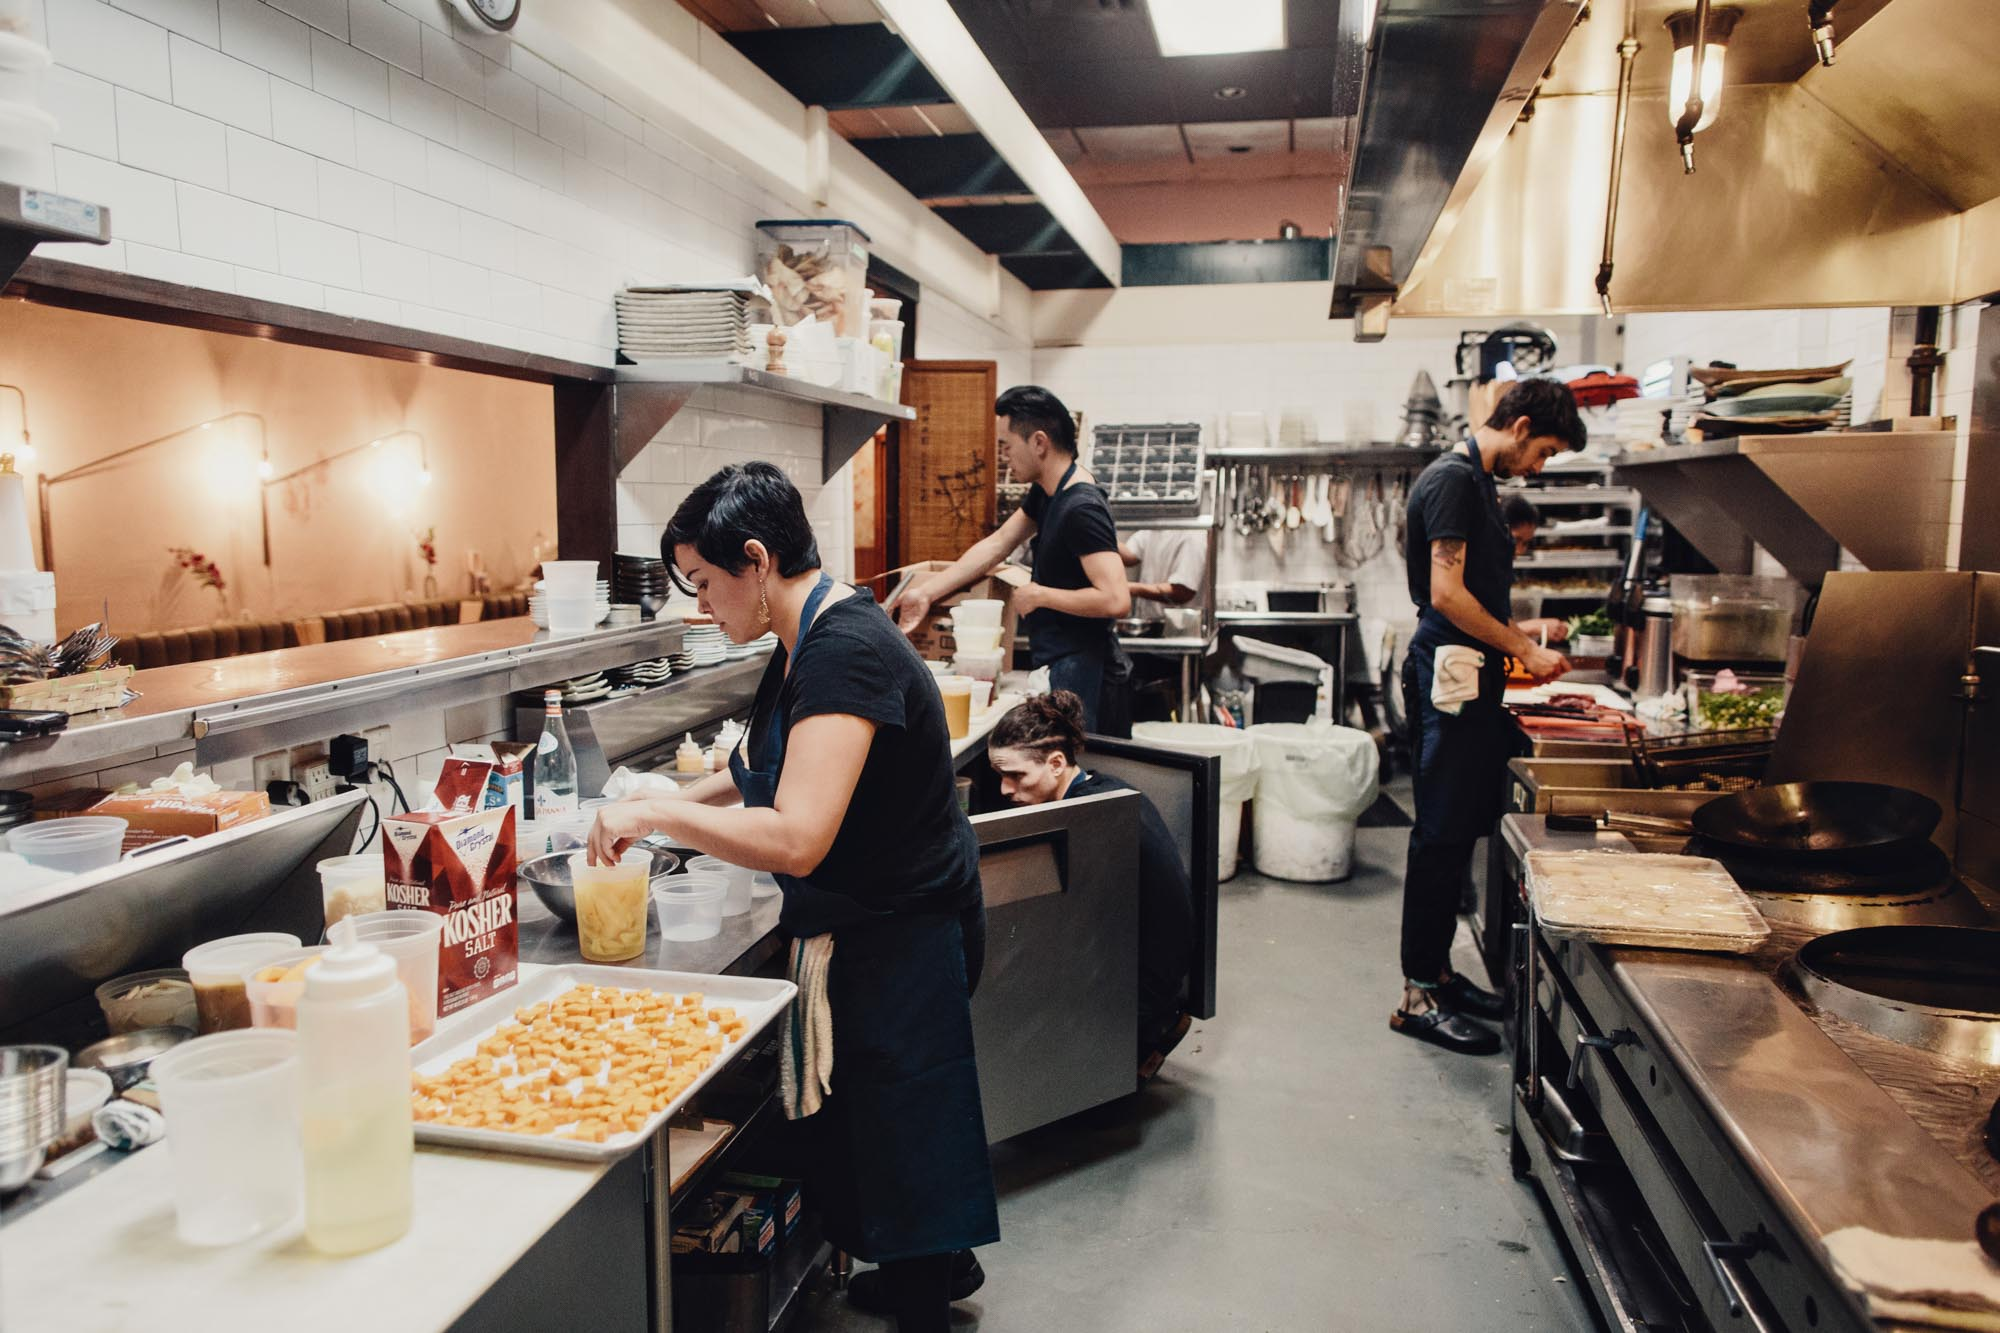 Chefs prepare meals in the kitchen of Bao Bei in Vancouver, British Columbia as part of the Dirt Road Travels city guide.